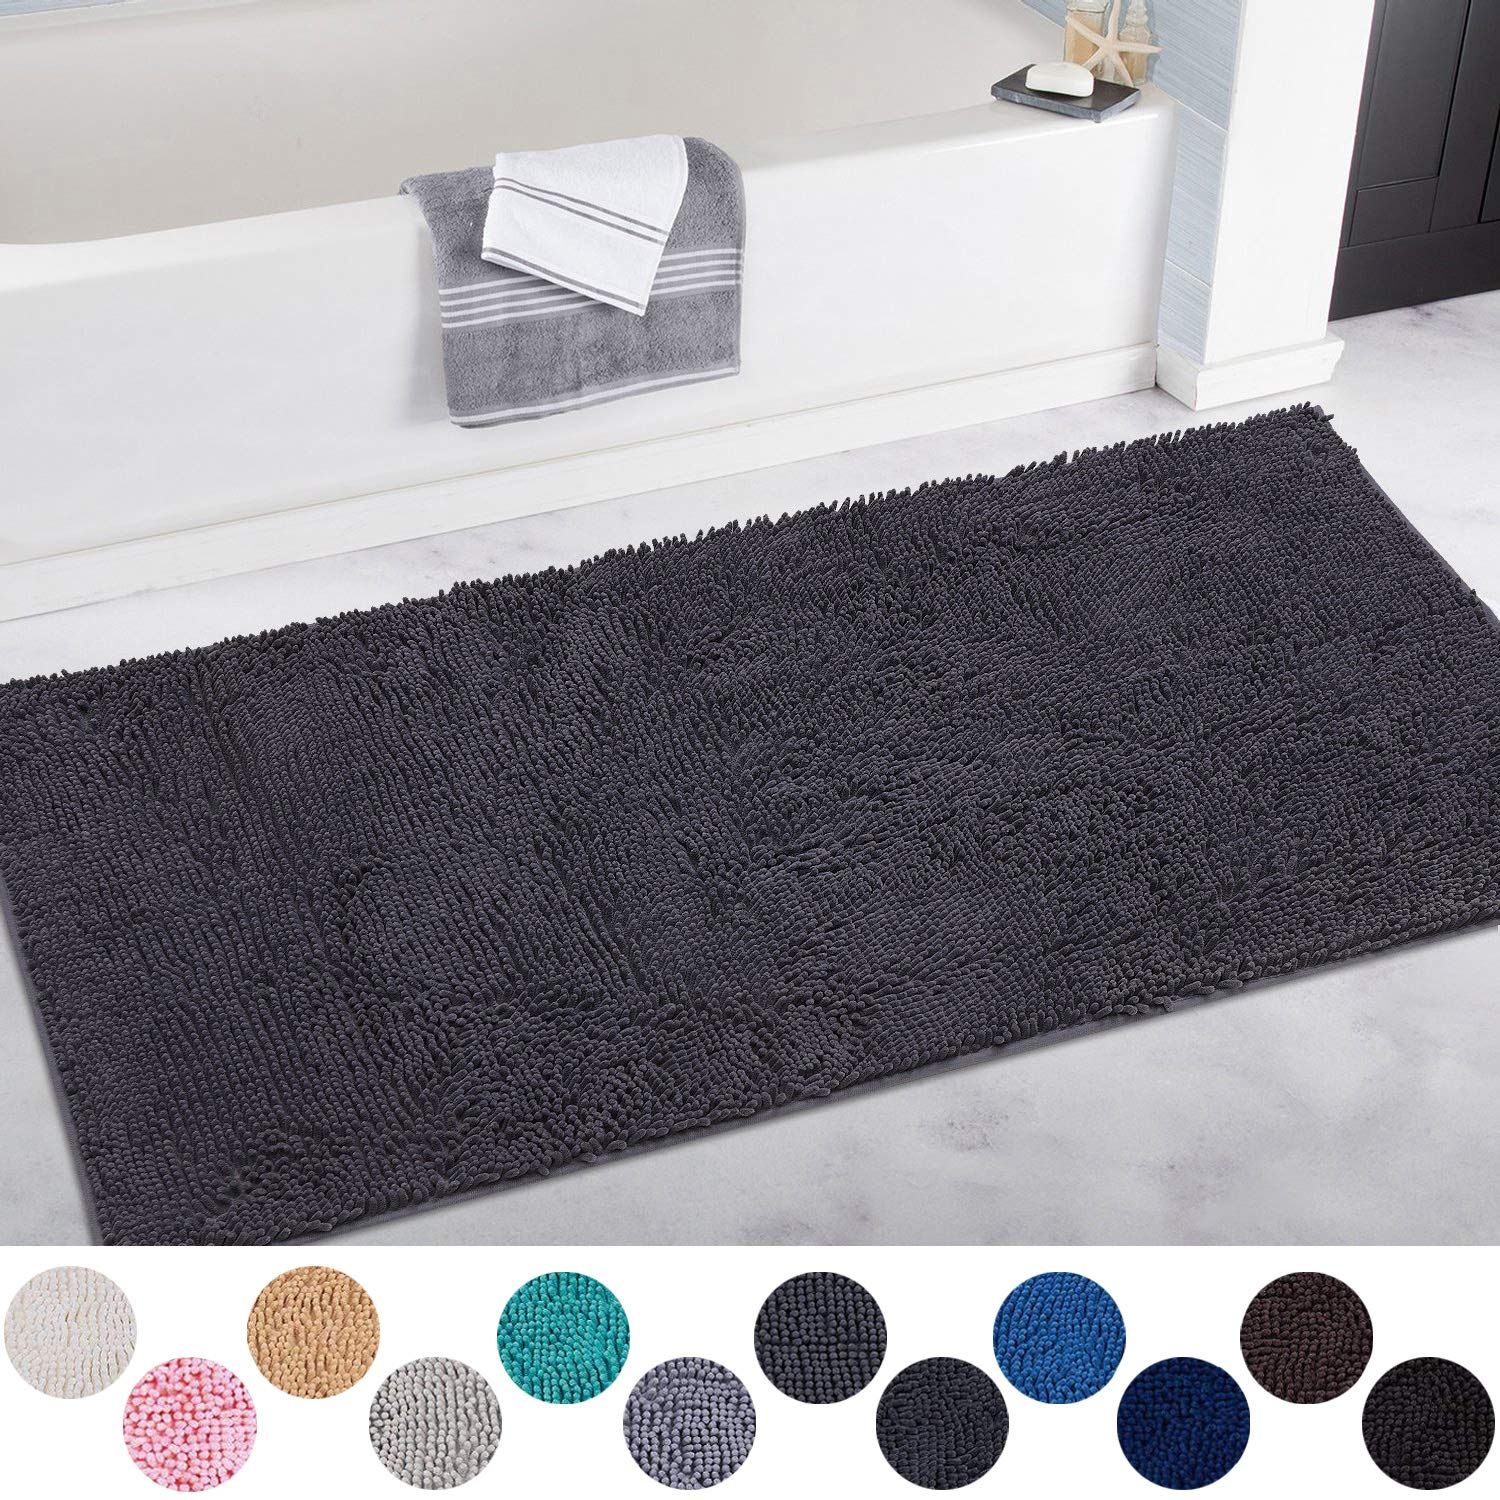 DEARTOWN Non-Slip Shaggy Bathroom Rug,Soft Microfibers Chenille Bath Mat with Water Absorbent, Machine Washable(Black,31x59 Inches)